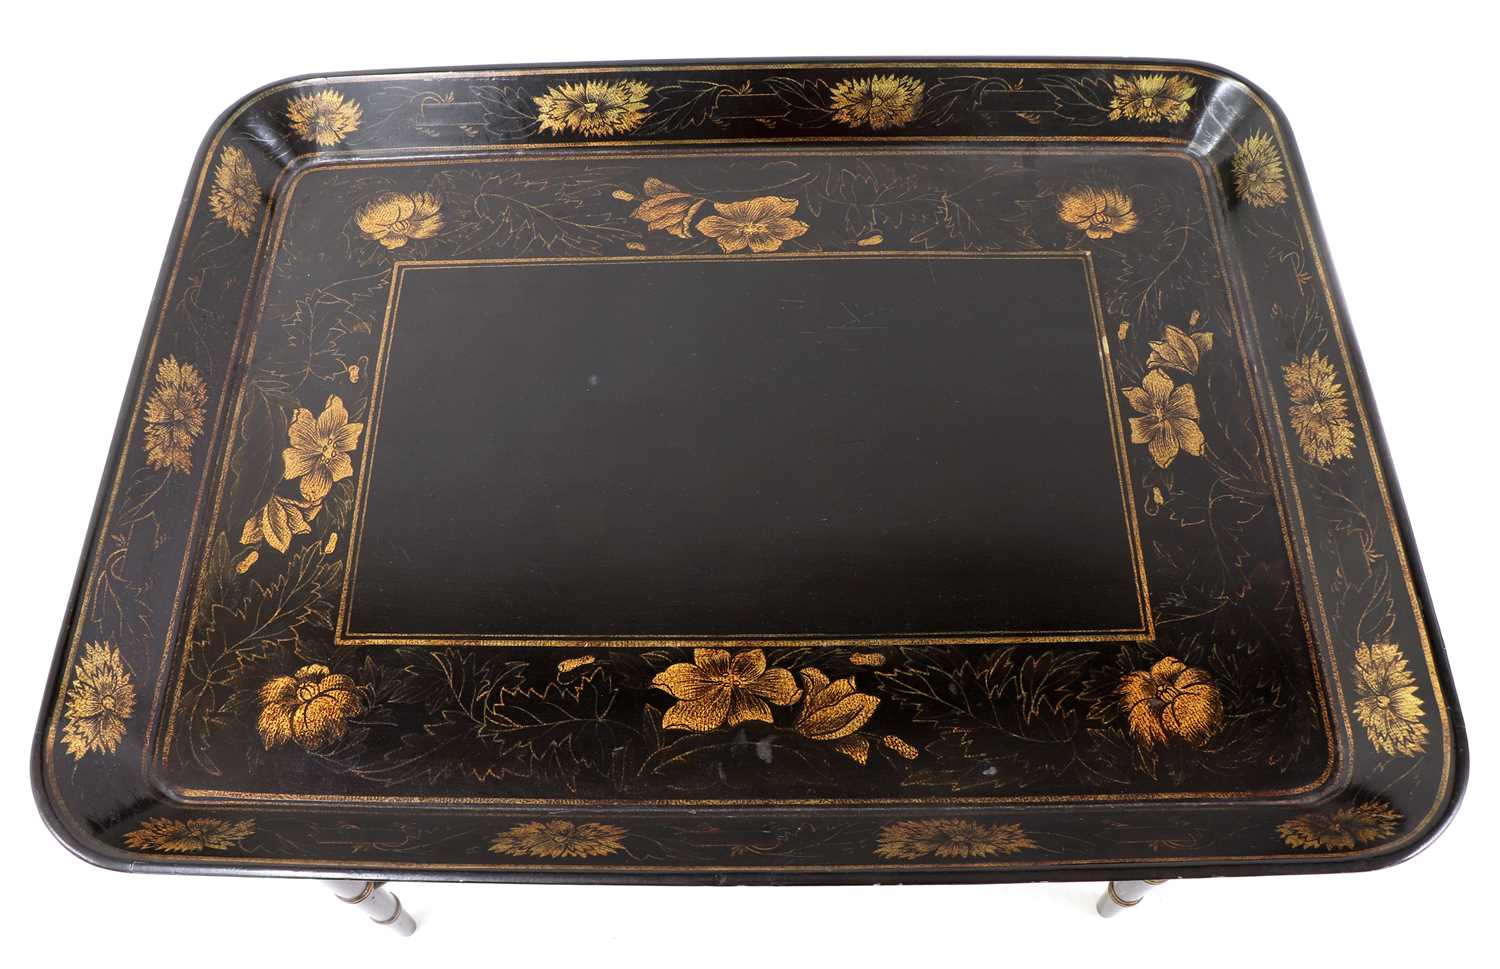 A pair of Regency-style papier mâché tray-top side tables, - Image 2 of 5